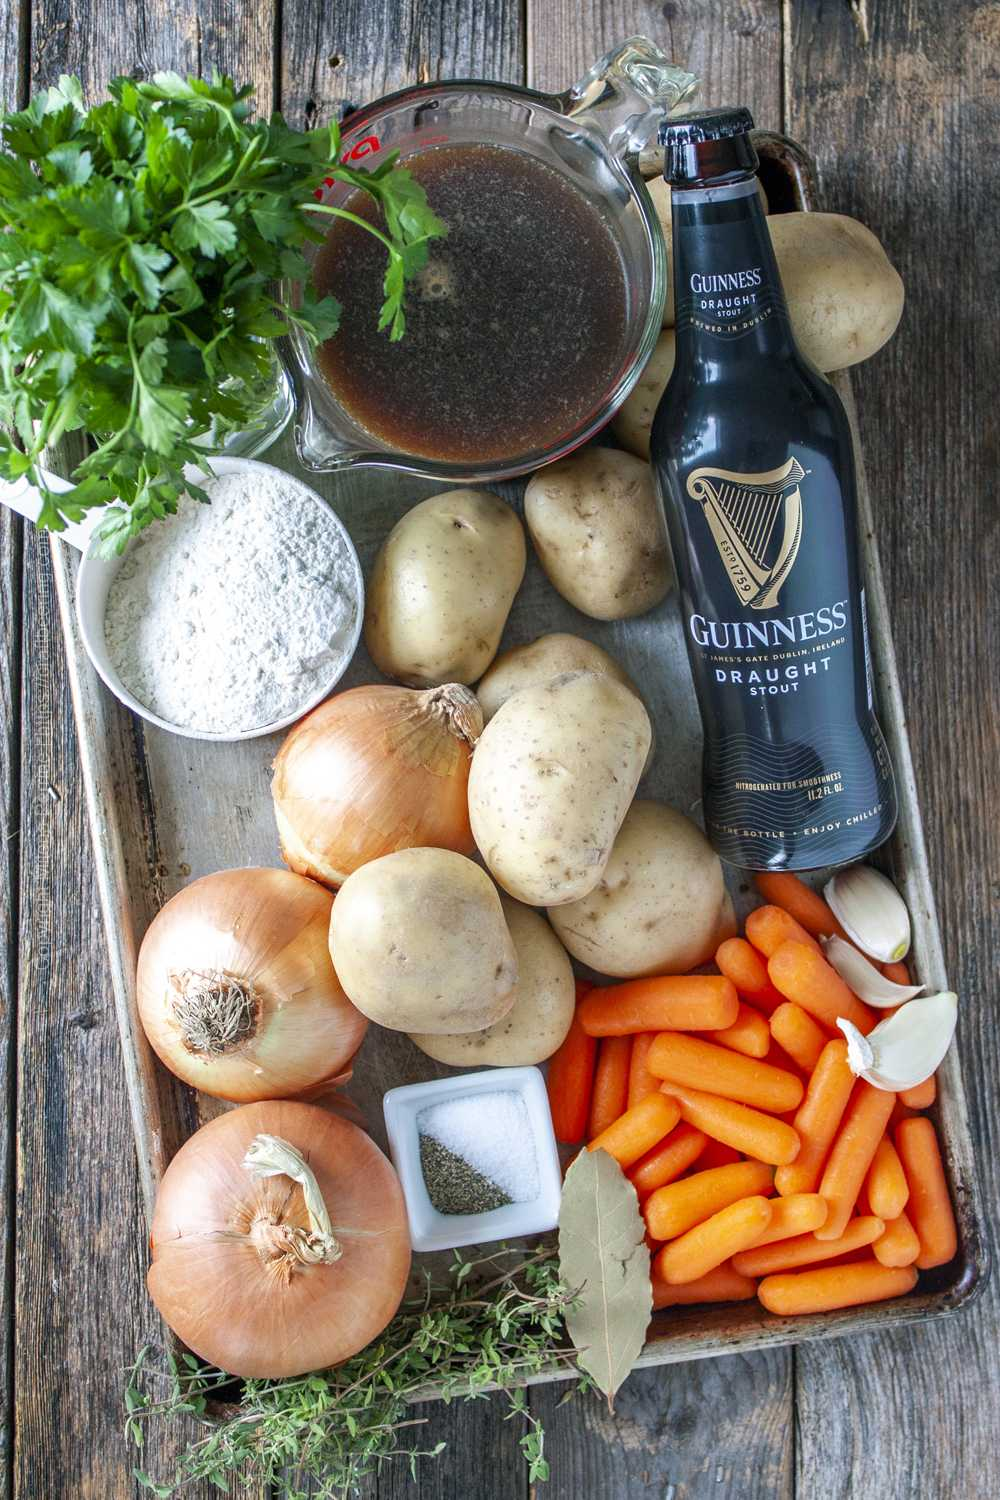 Traditional ingredients for Irish stew - carrots, potatoes, onions, Guinness etc. .